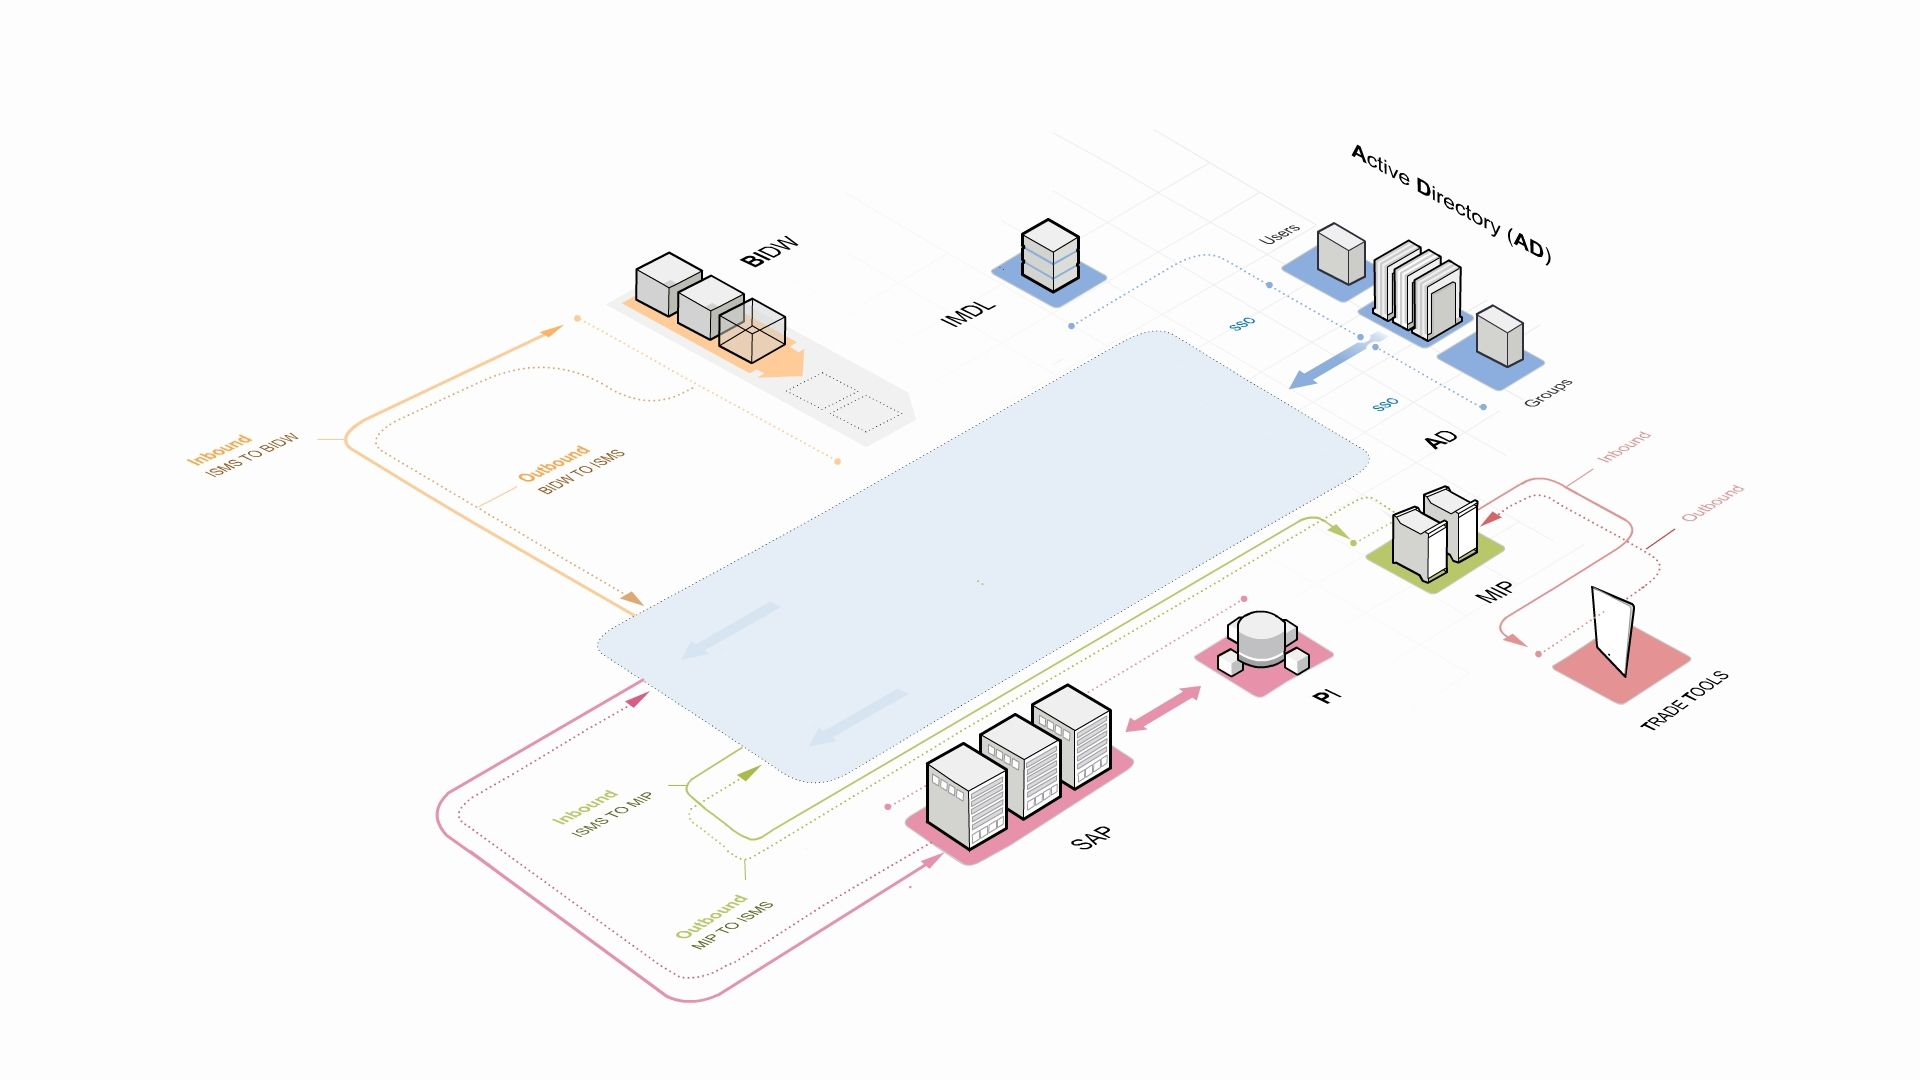 Isometric Diagram On Behance Board Information Design The Purpose Of An Is To